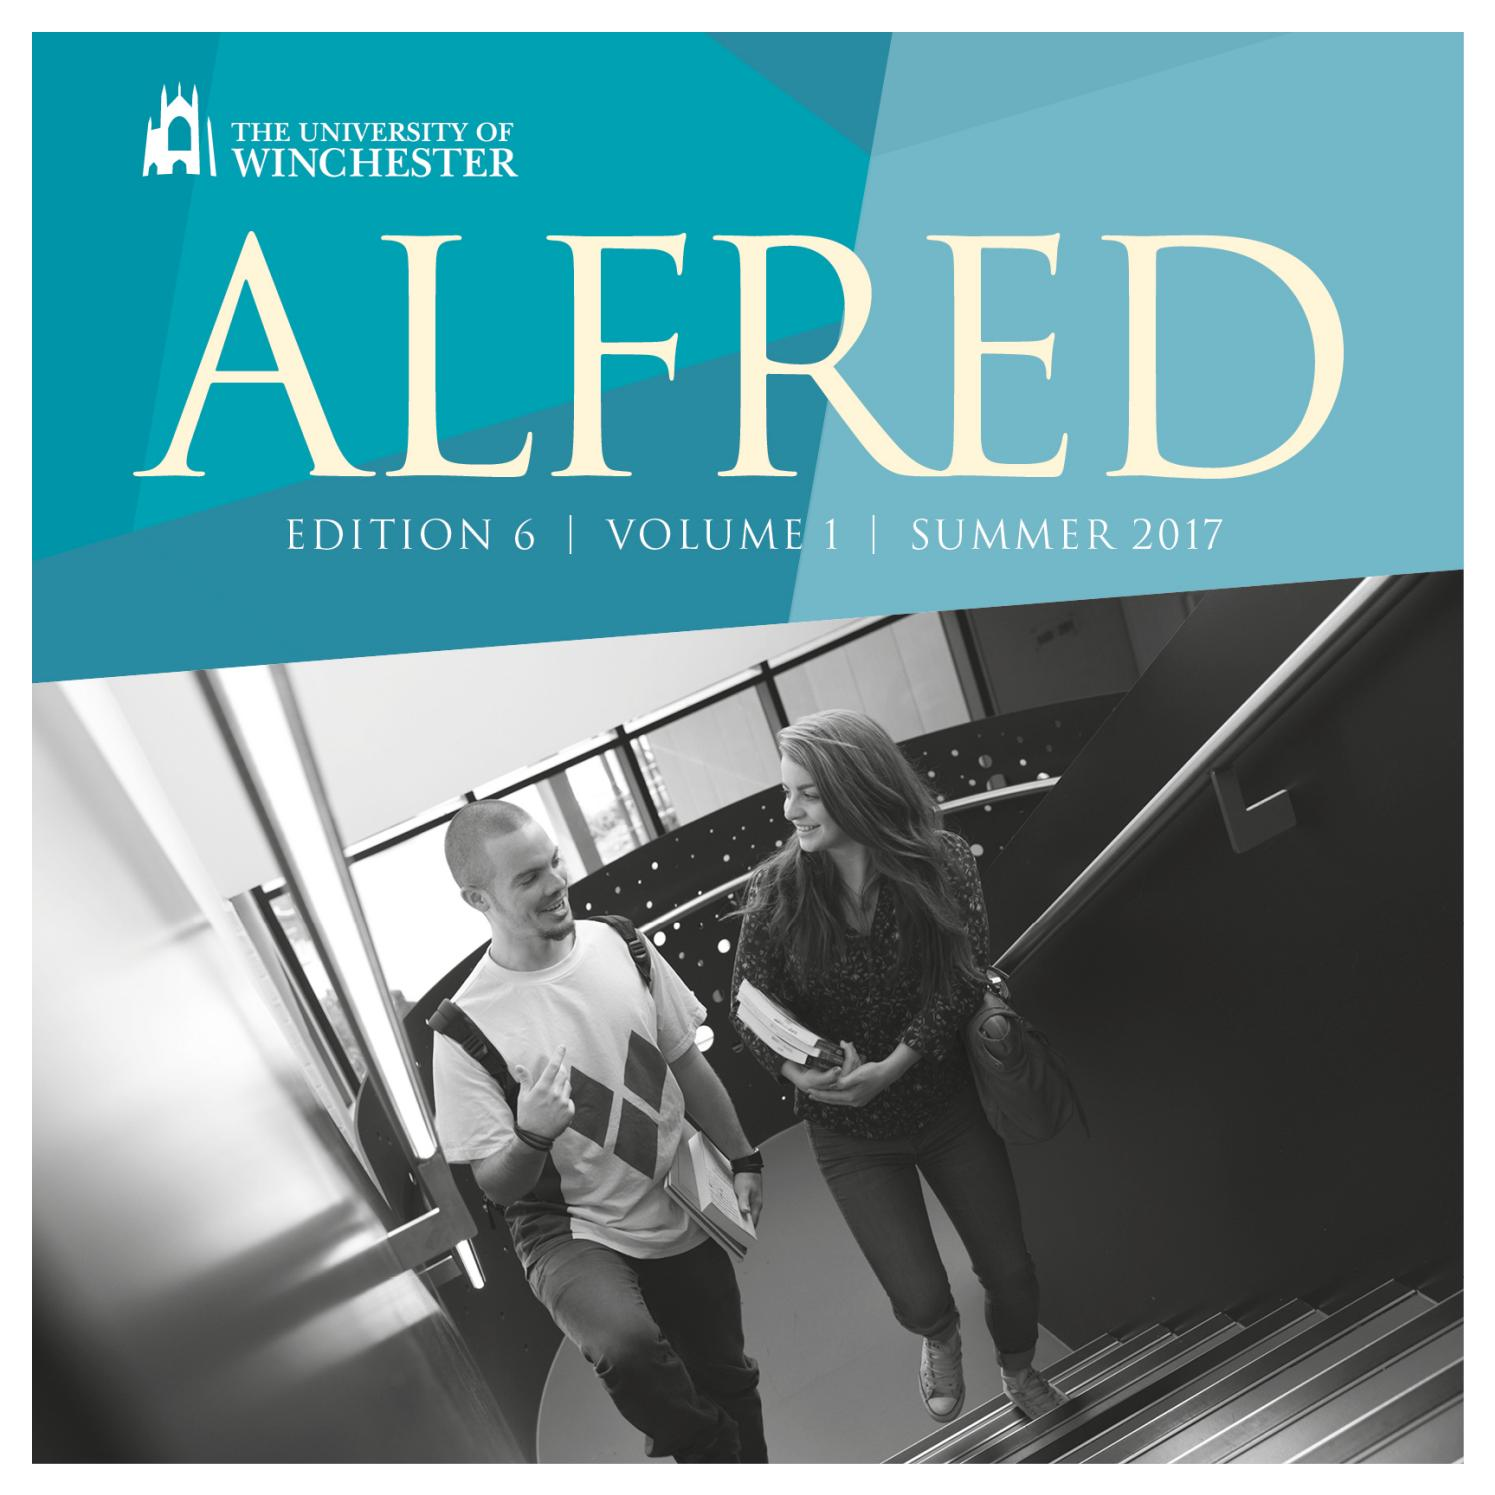 2a1ae60f45c8f ALFRED 2017 Edition 6. Vol. 1 by University of Winchester - issuu